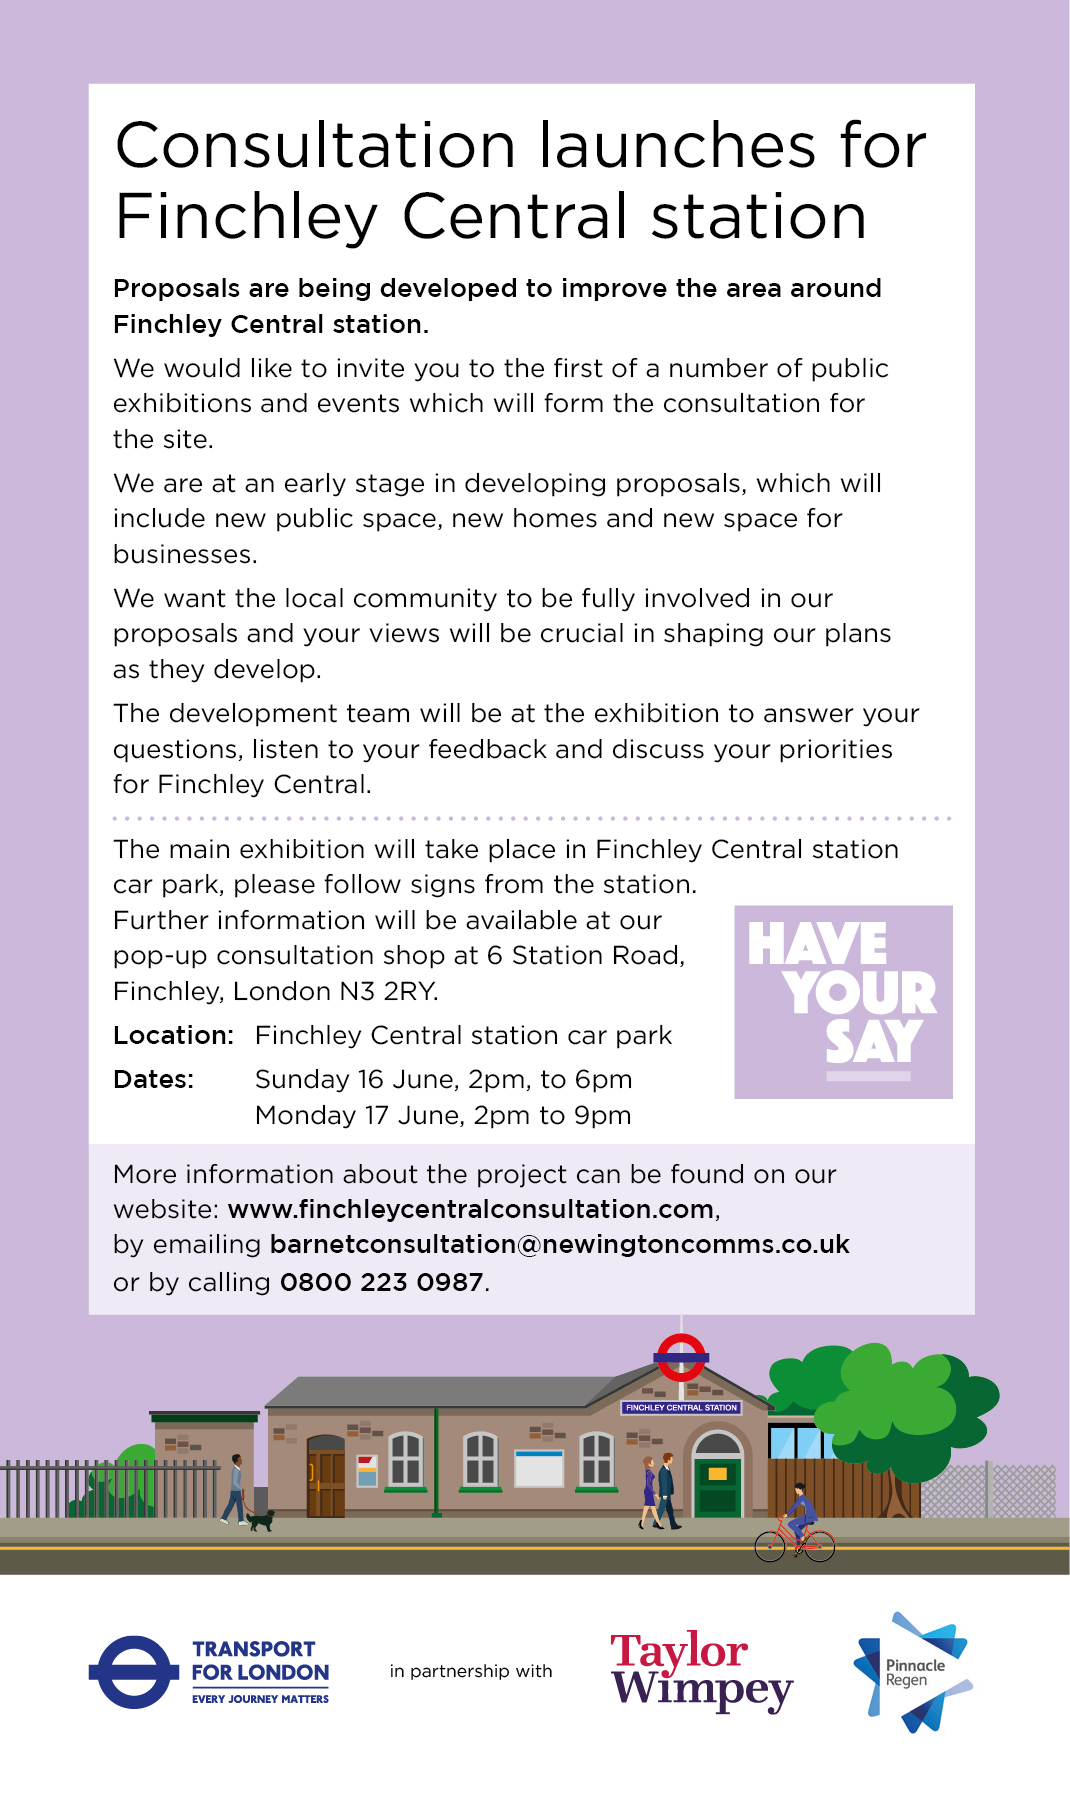 finchley central leaflet